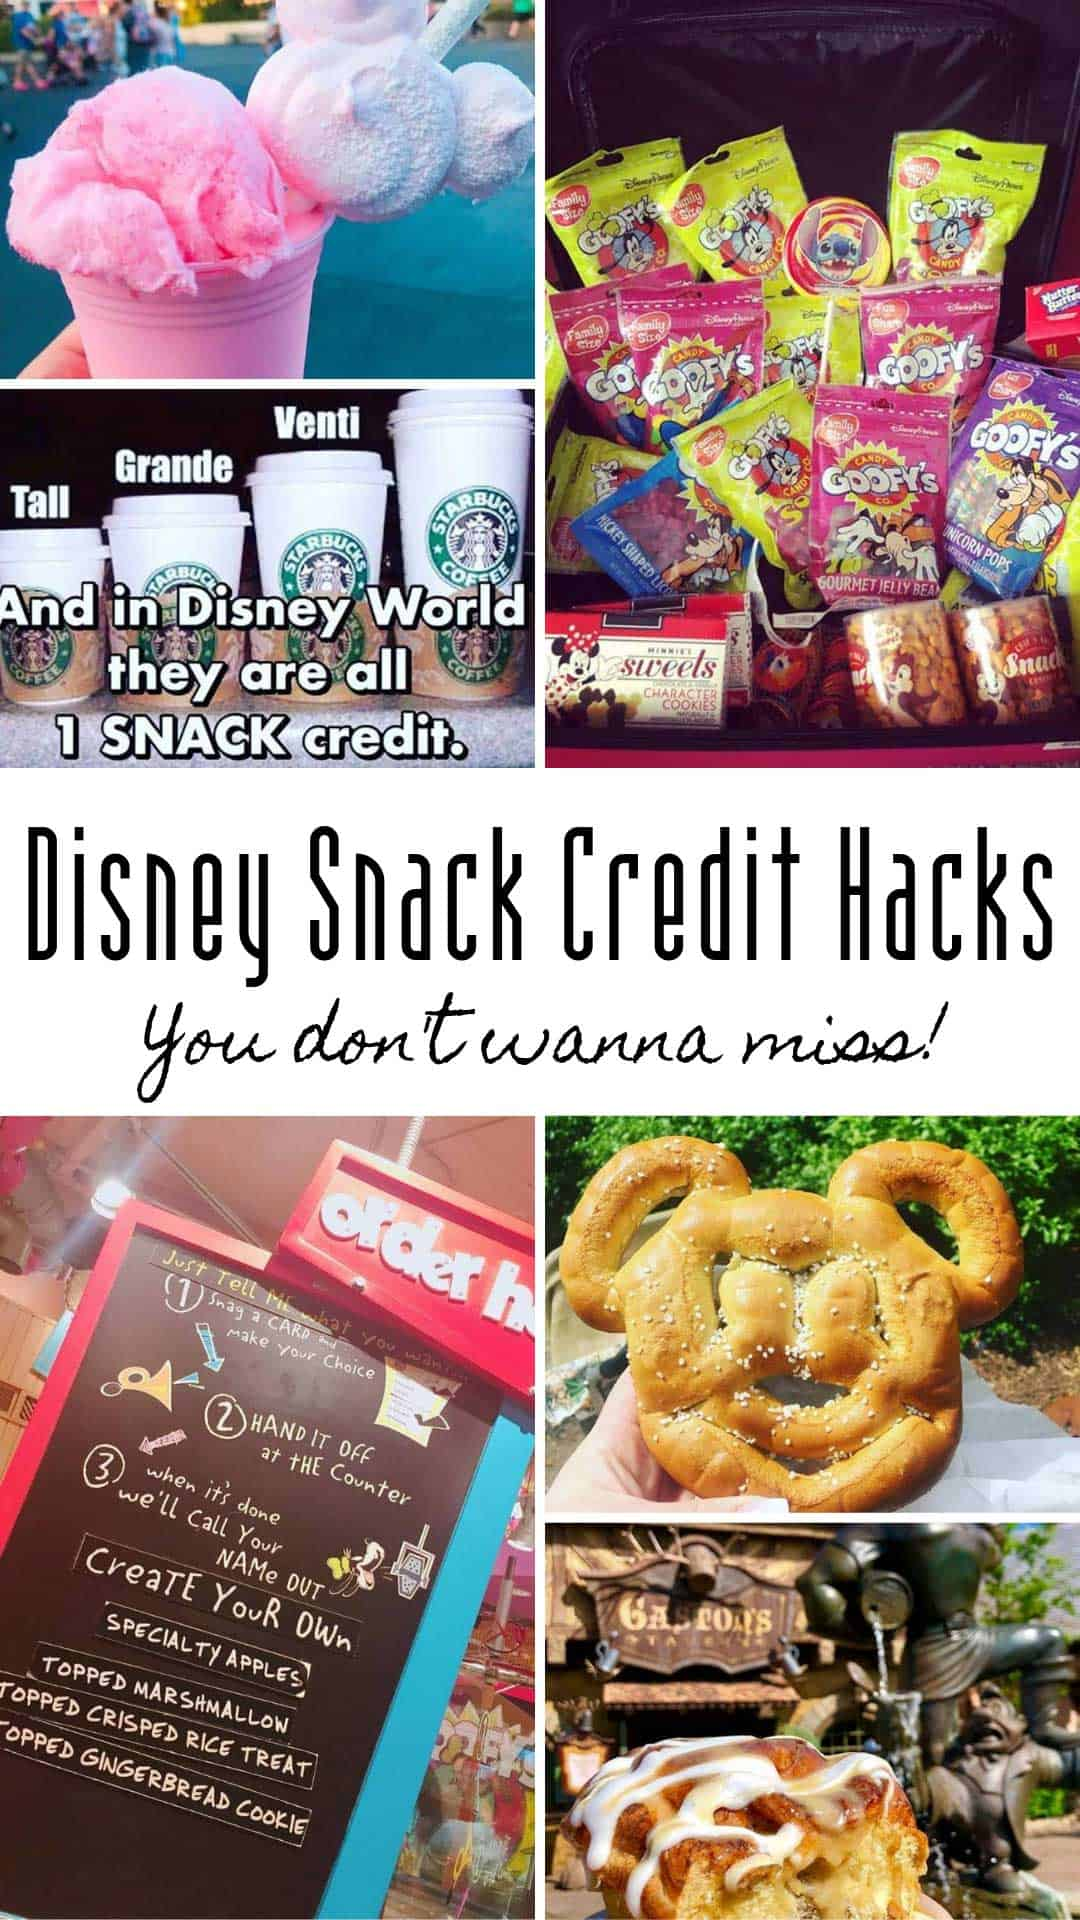 Use your dining plan snack credits wisely and you can really get the most value out of your meal plan. Check out our hacks to find out how to do it like a pro!